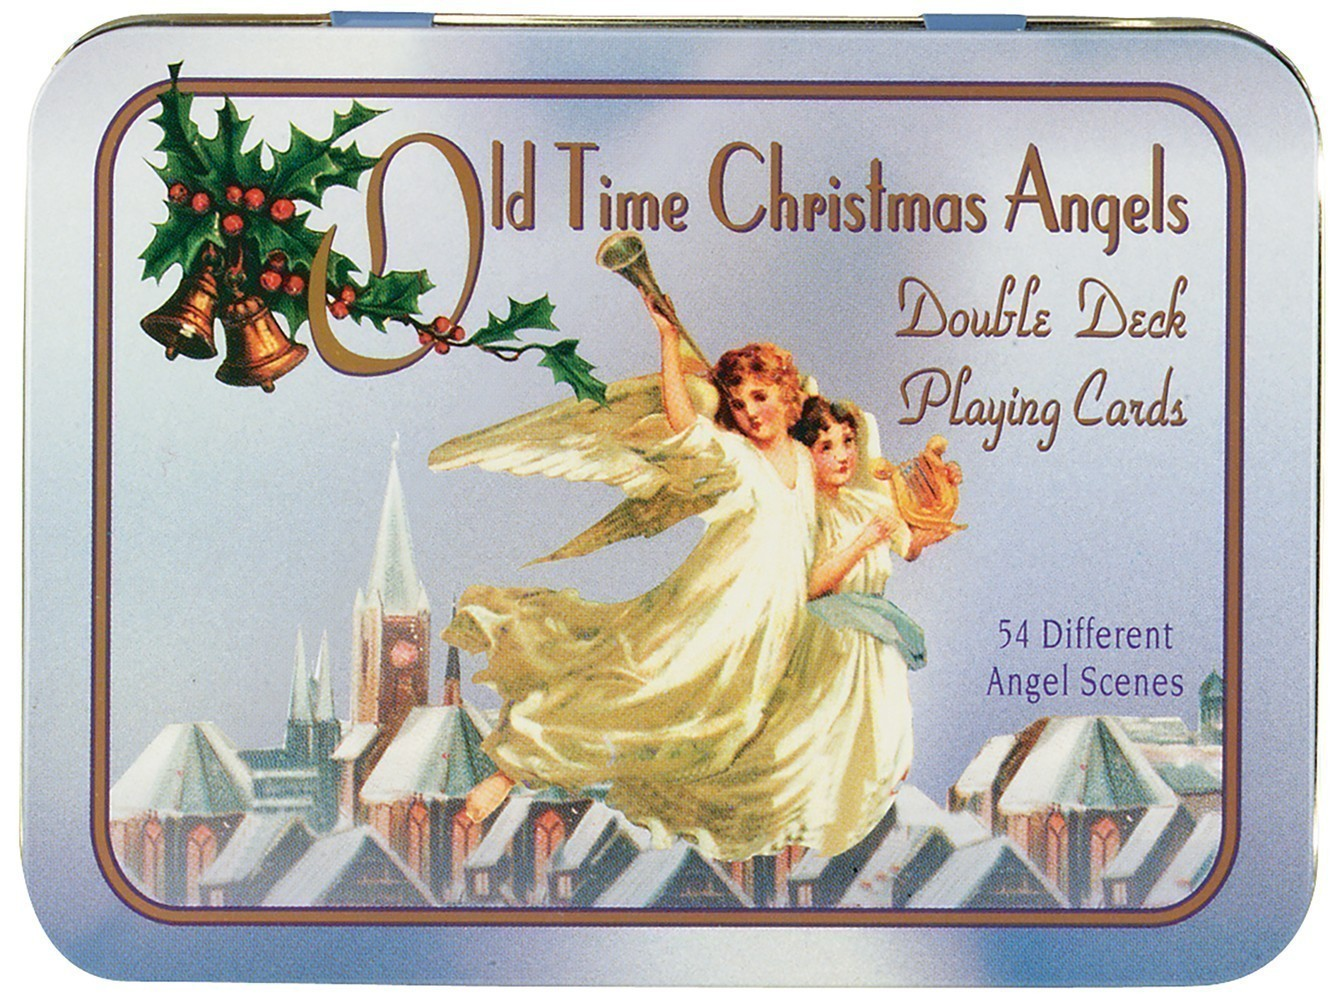 Old Time Christmas Angels Deluxe Double Bridge Deck